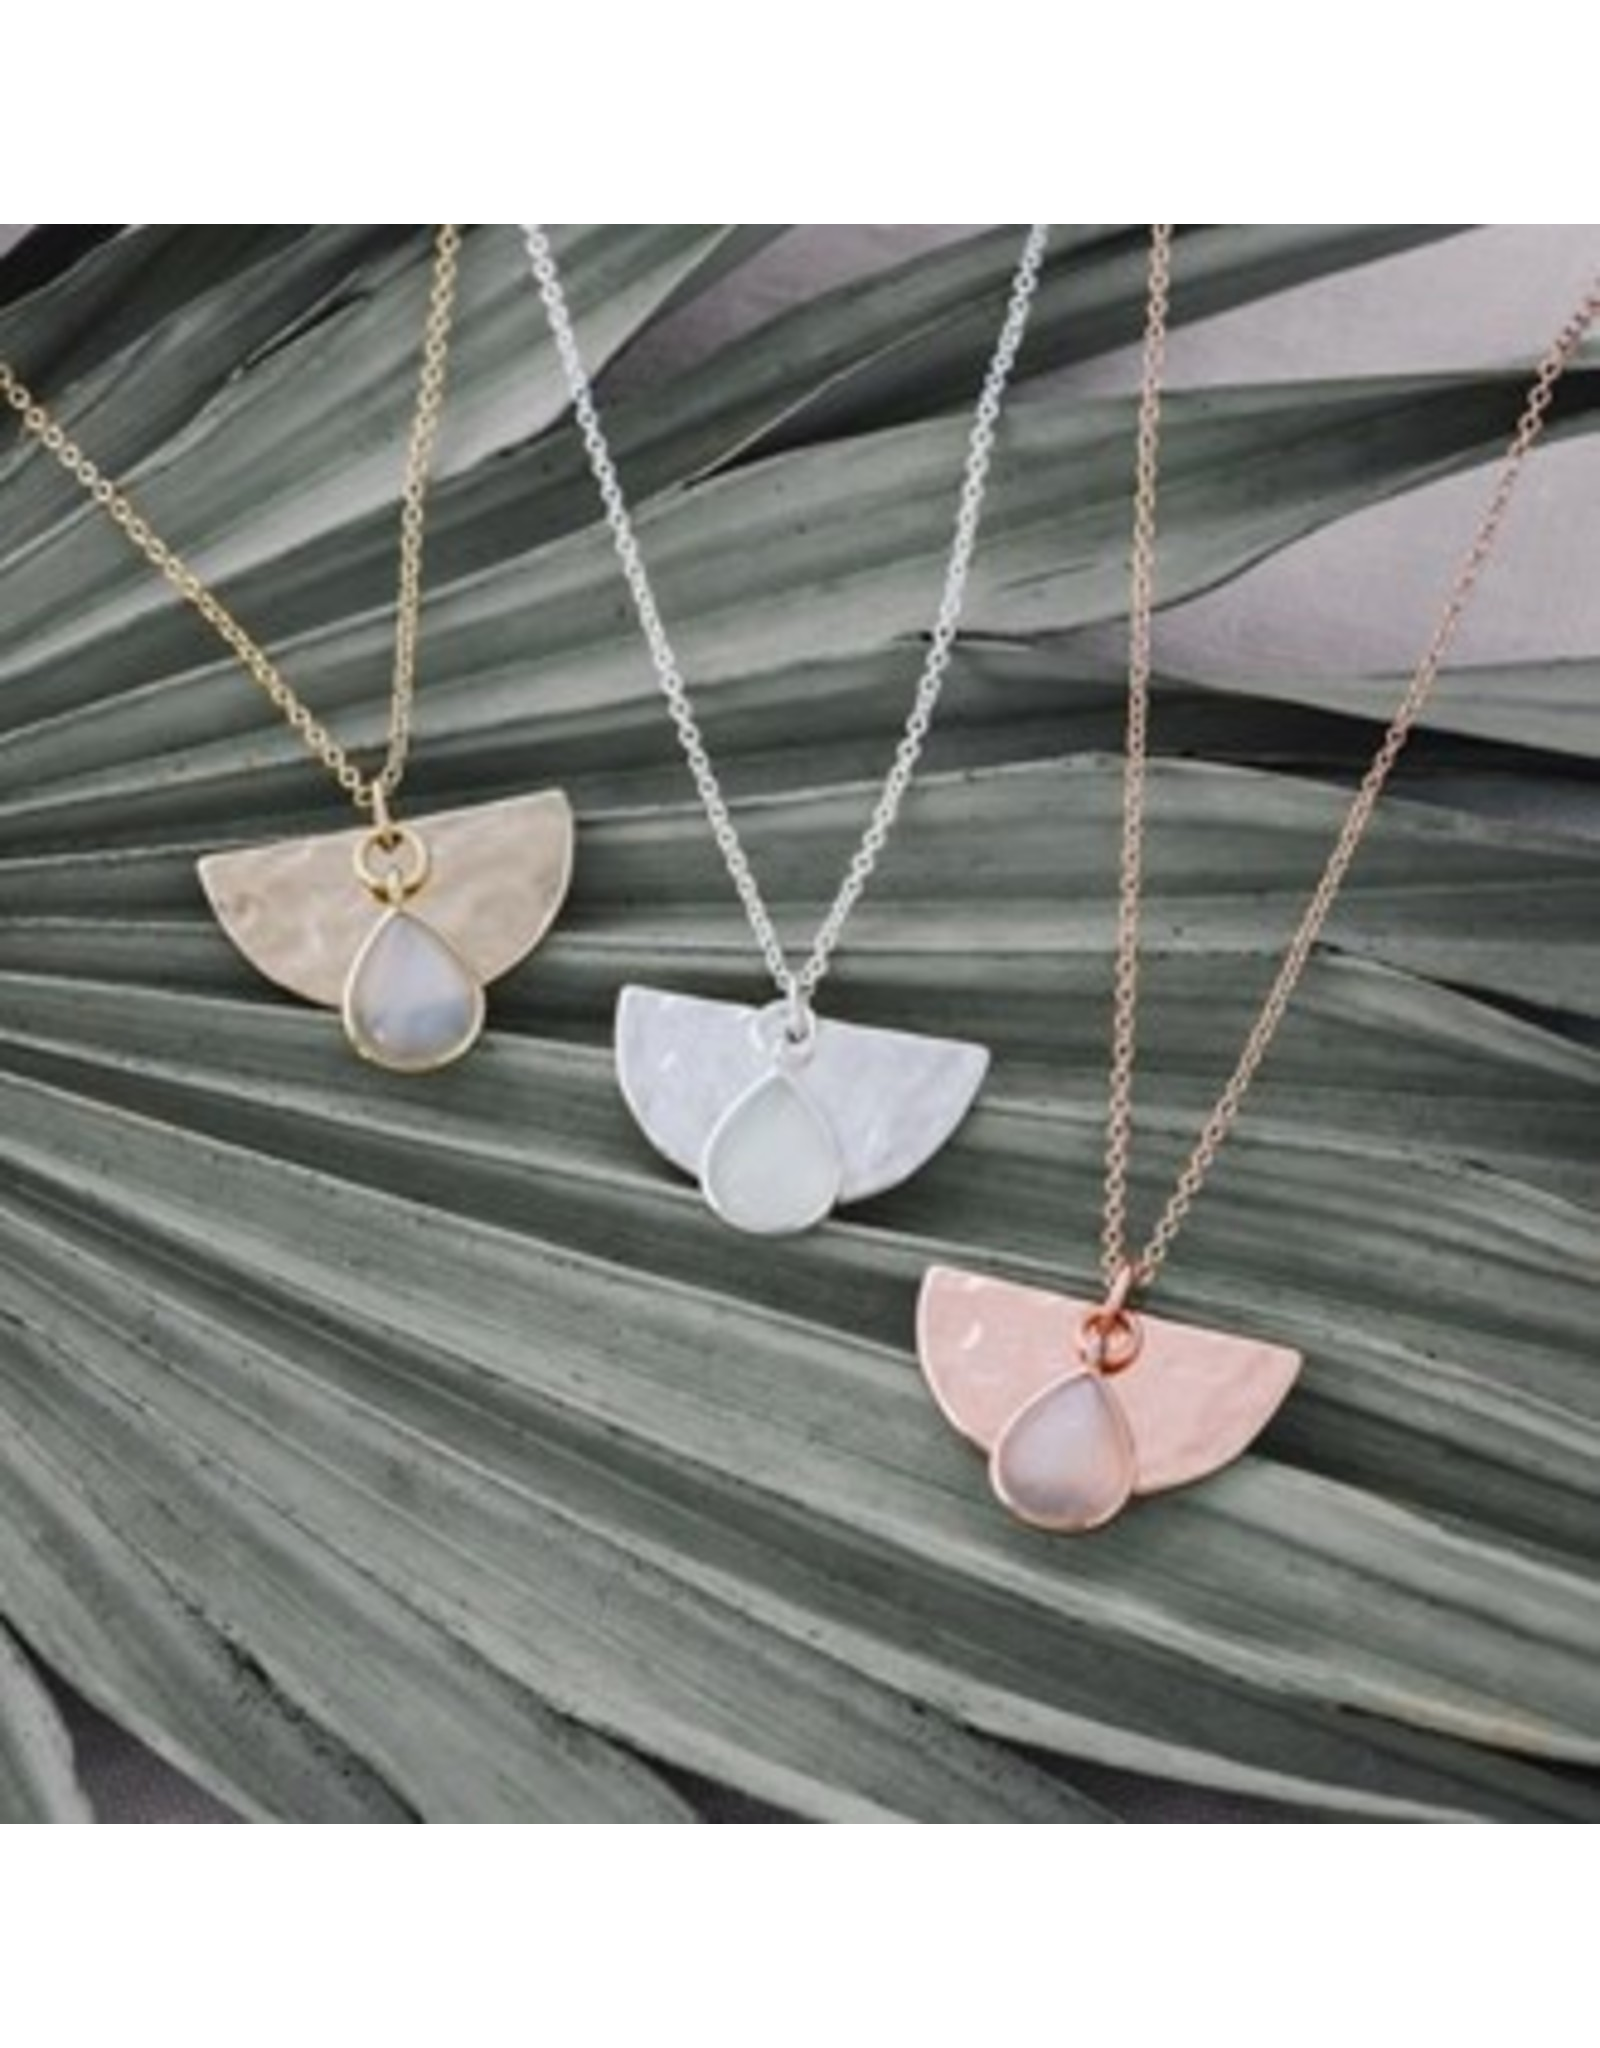 Glee jewelry Blossom Necklace/White Moon Stone/Rose Gold